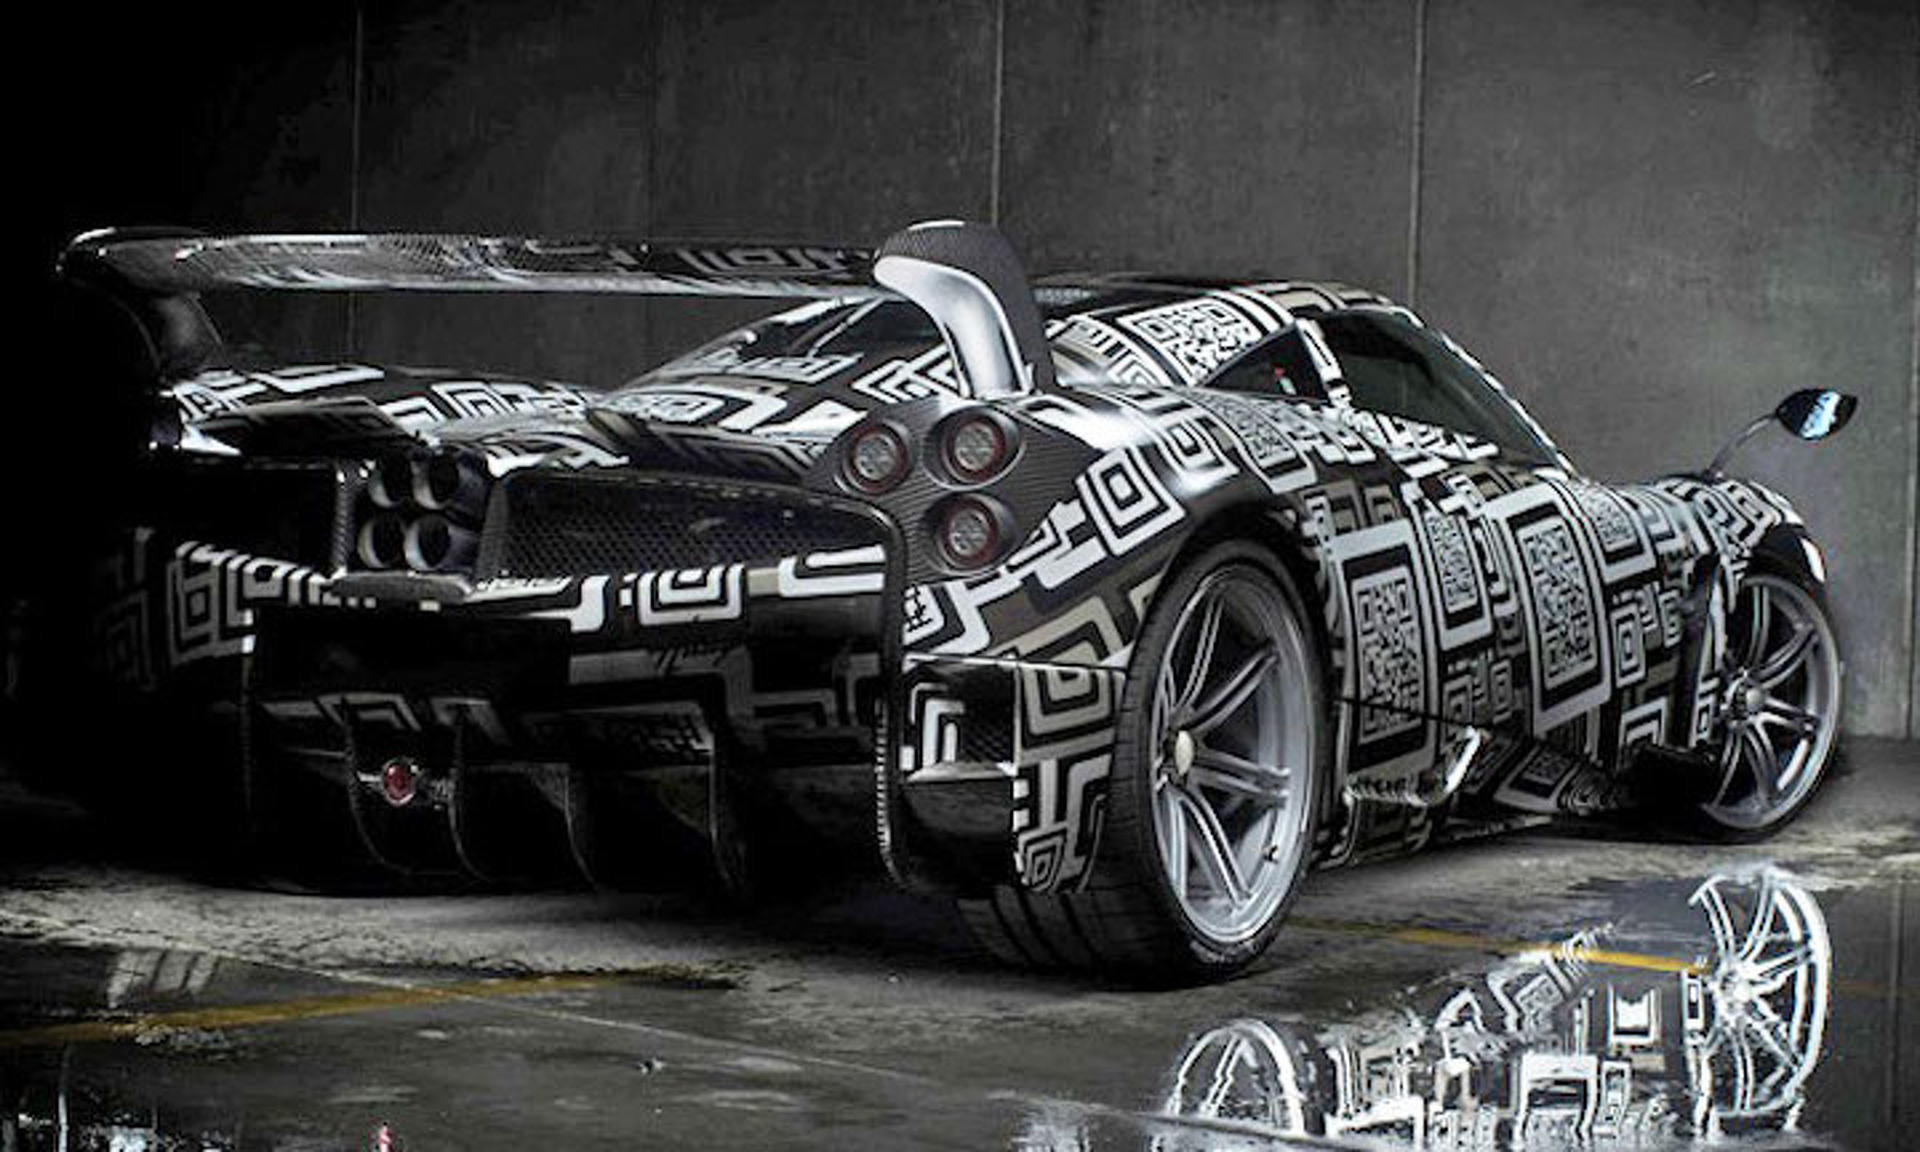 The Best Way to Start 2016 is With a Faster Pagani Huayra